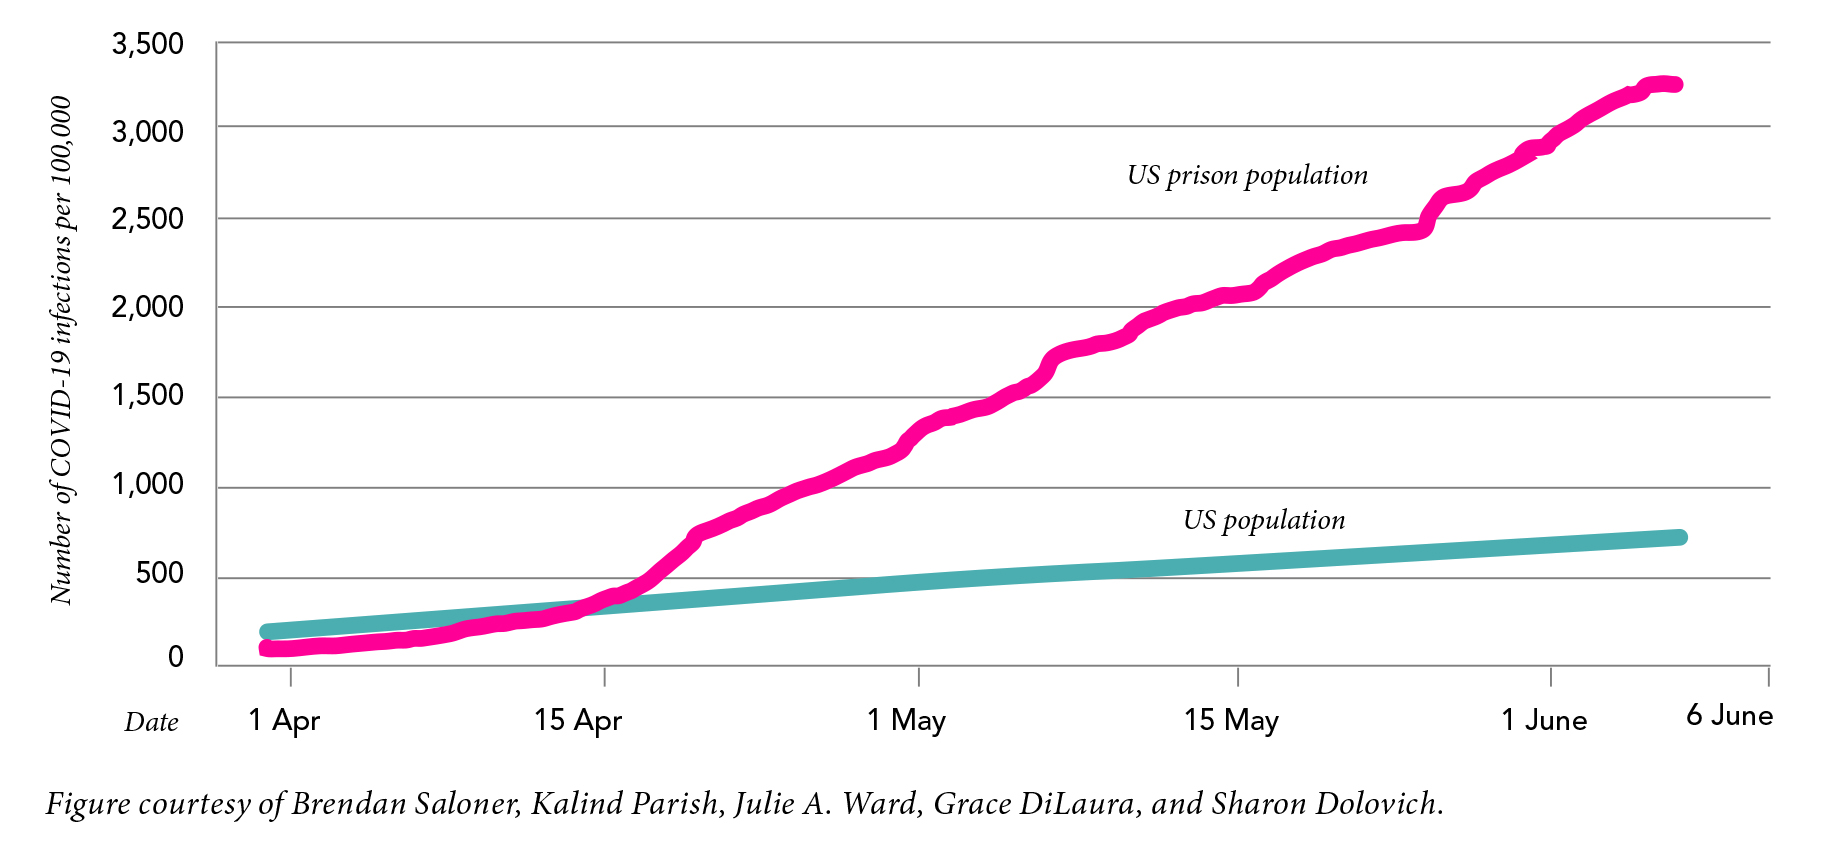 Figure 1: COVID-19 in US Prisons and the General Population